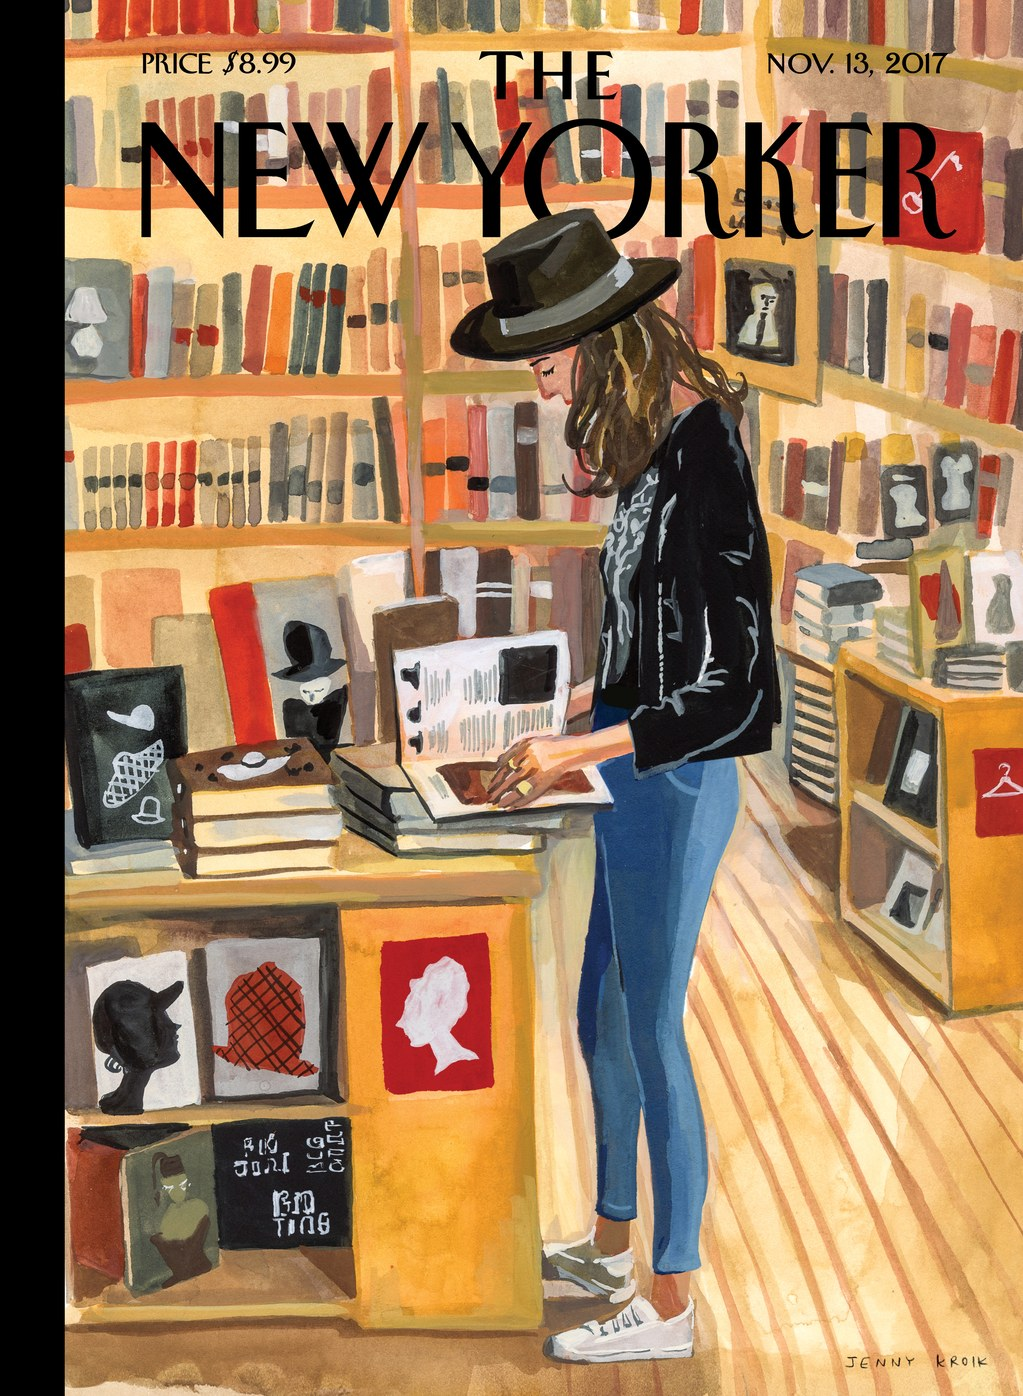 The New Yorker Cover.jpg